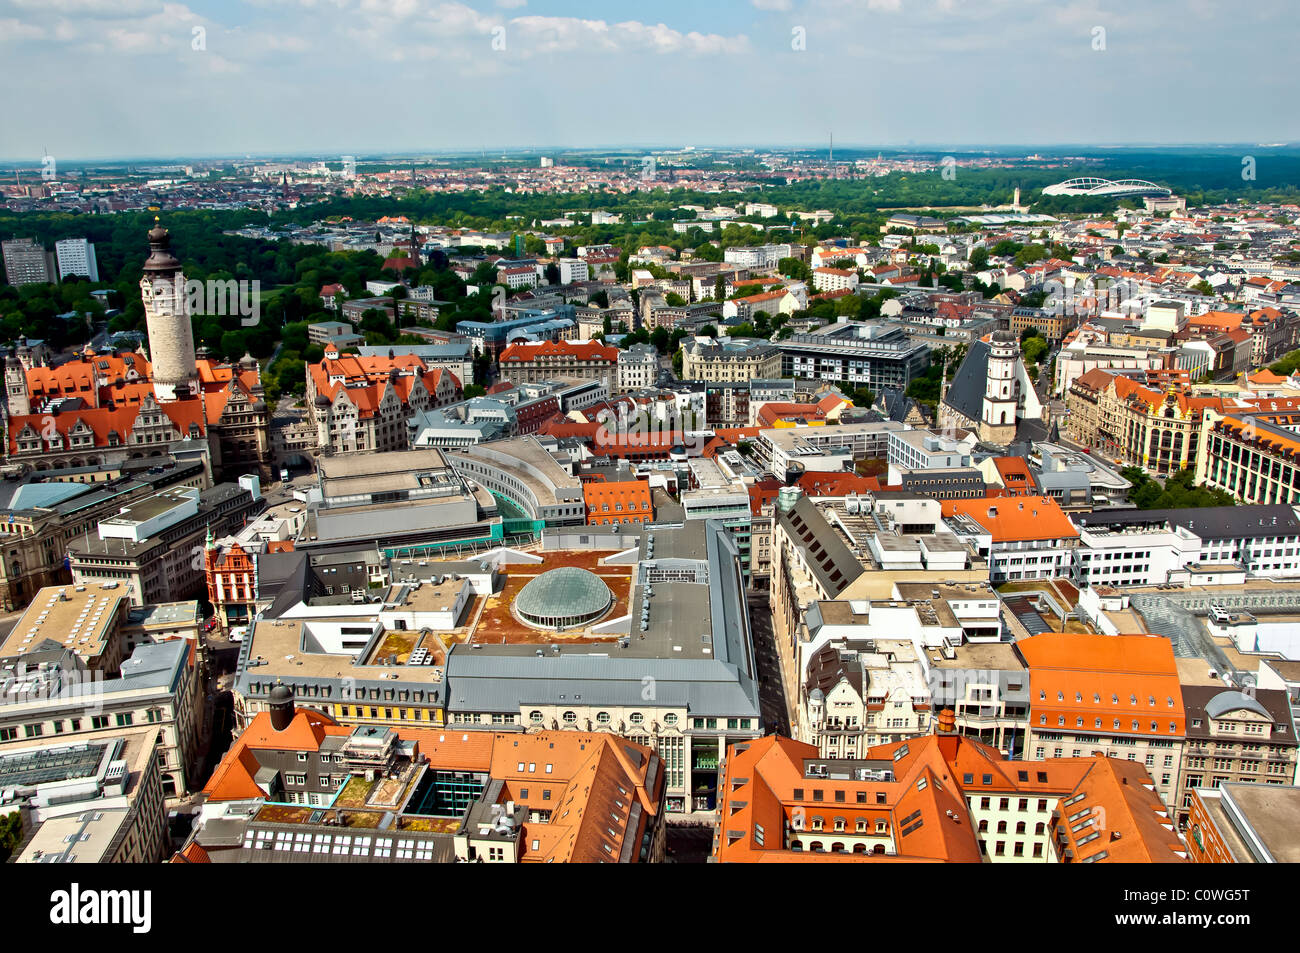 Aerial City of Leipzig, State of Saxony, Germany - Stock Image